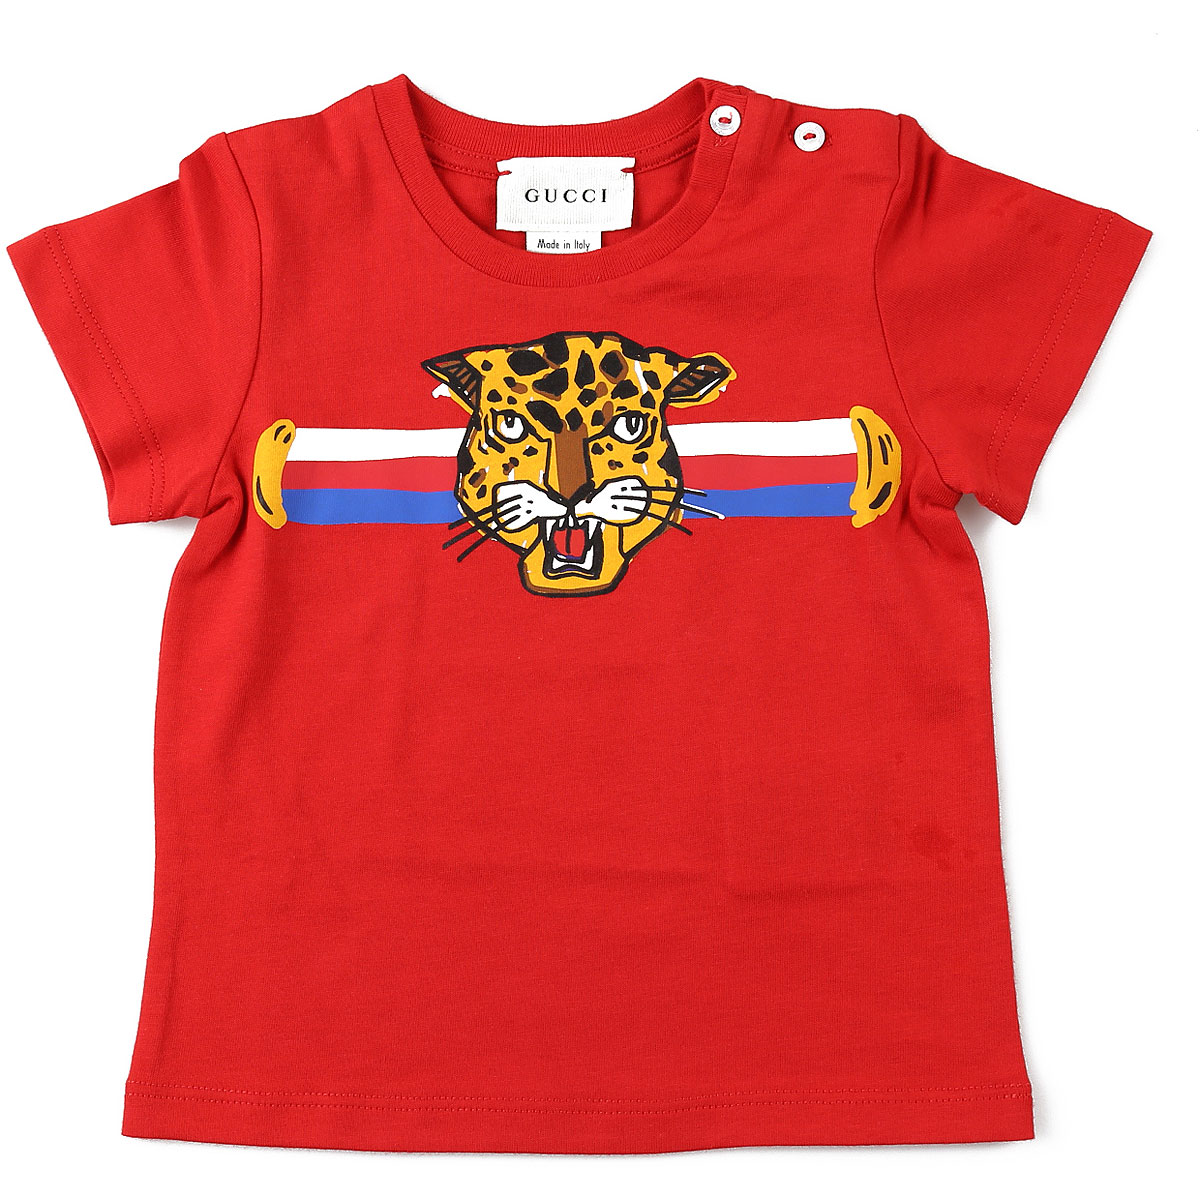 Gucci Baby T-Shirt for Boys On Sale, Red, Cotton, 2019, 24M 3Y 6M 9M